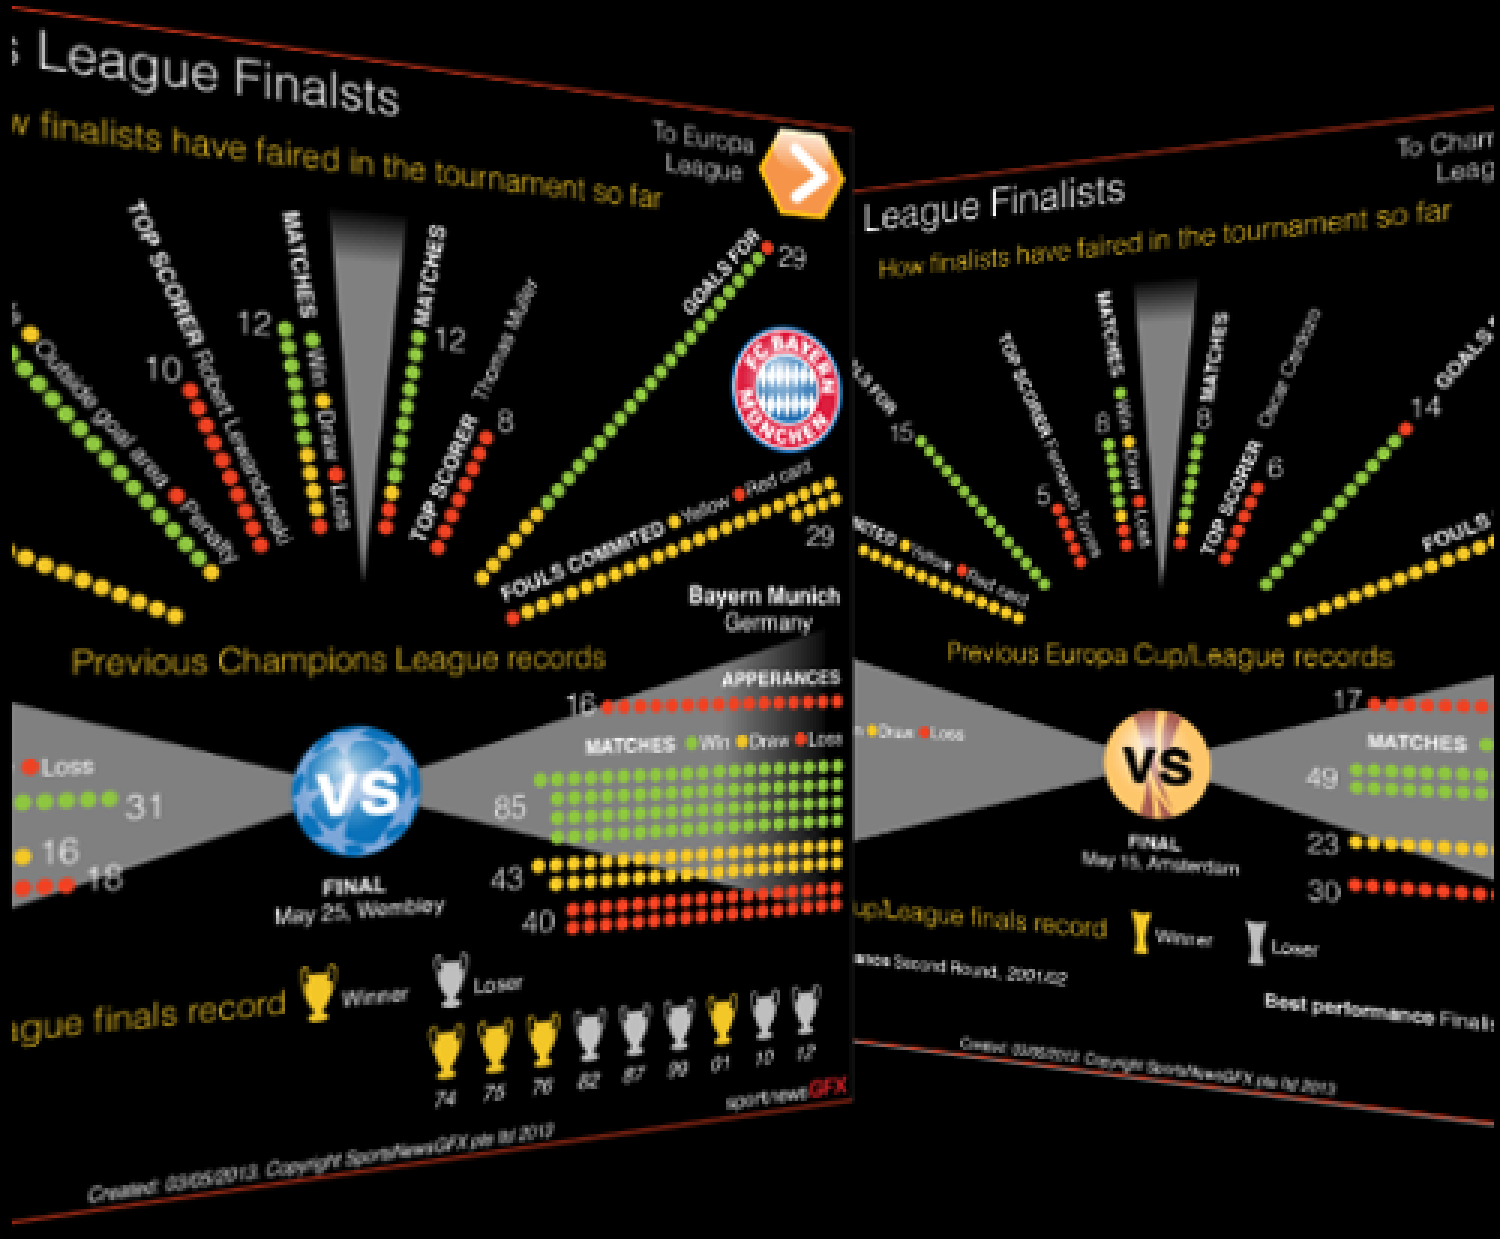 Champions League and Europa League finalist Infographic